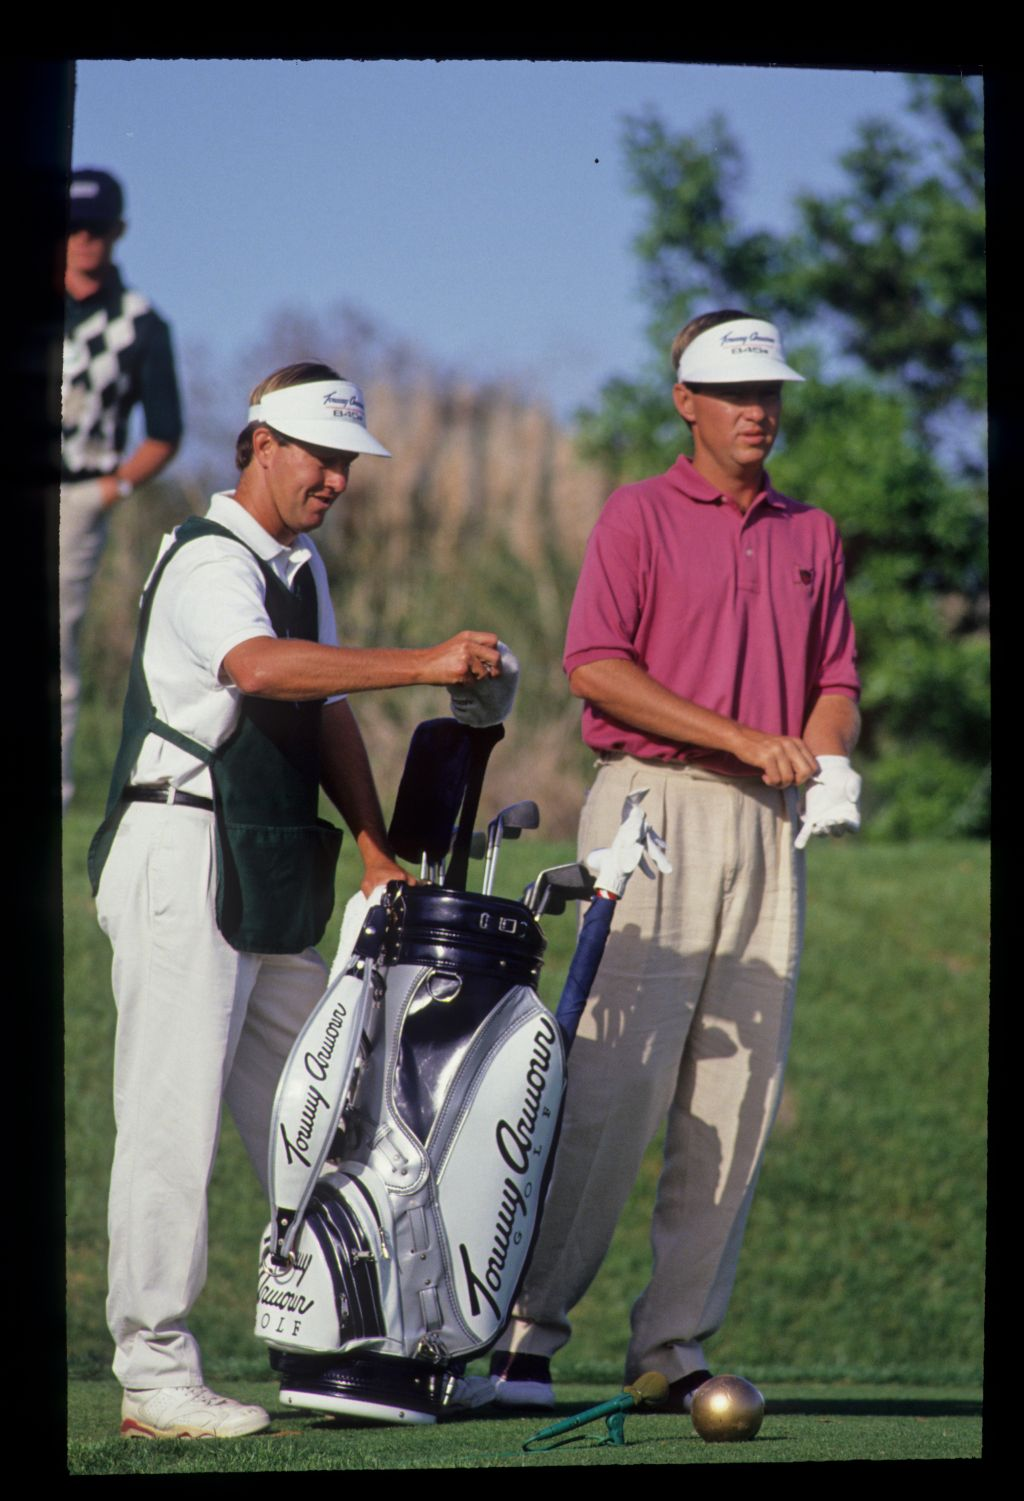 Davis Love III and his caddie preparing to drive on his way to winning the 1992 TPC